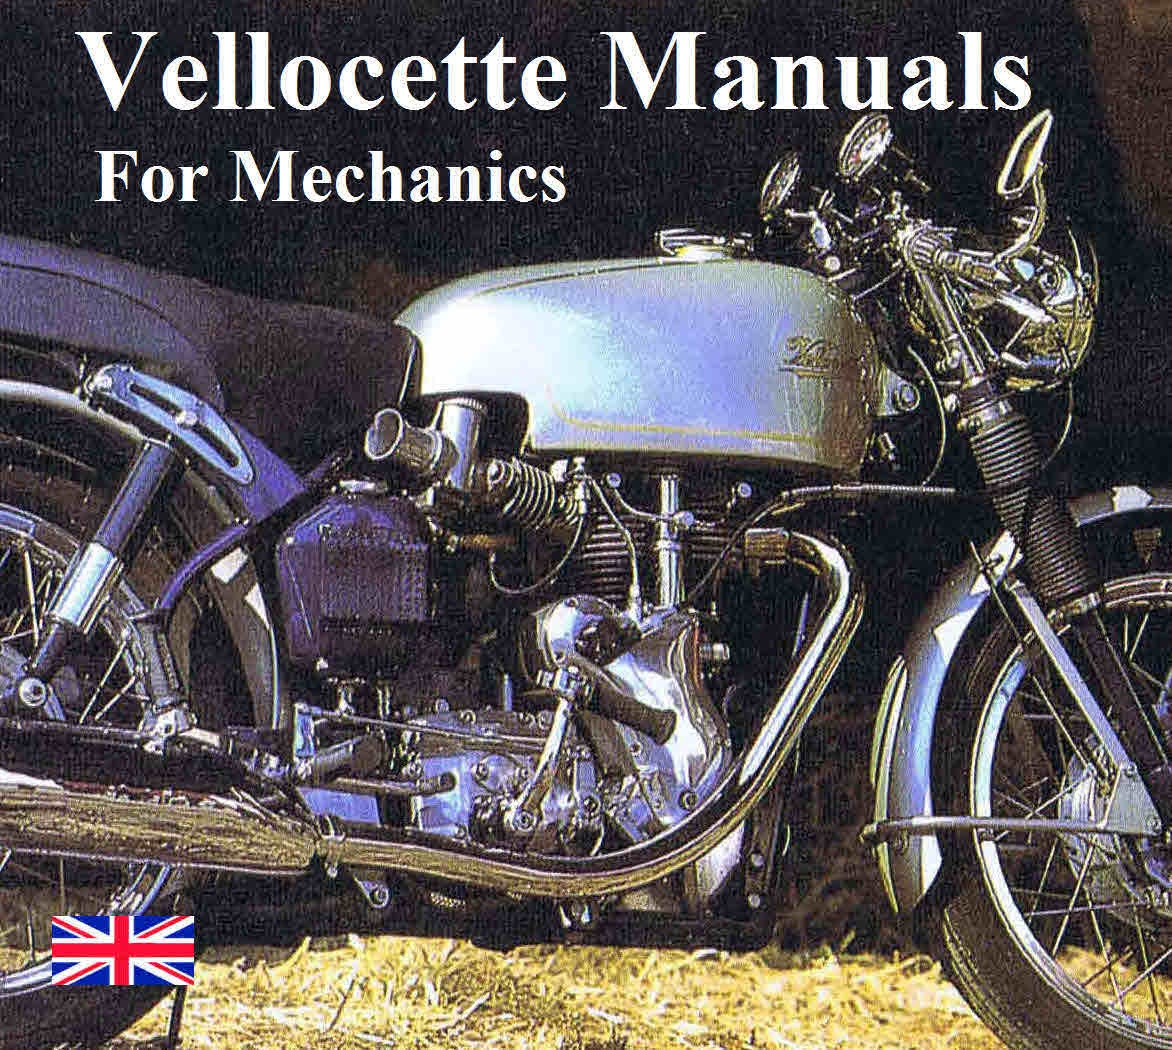 Velocette Vintage Motorcycle Manuals For Mechanics